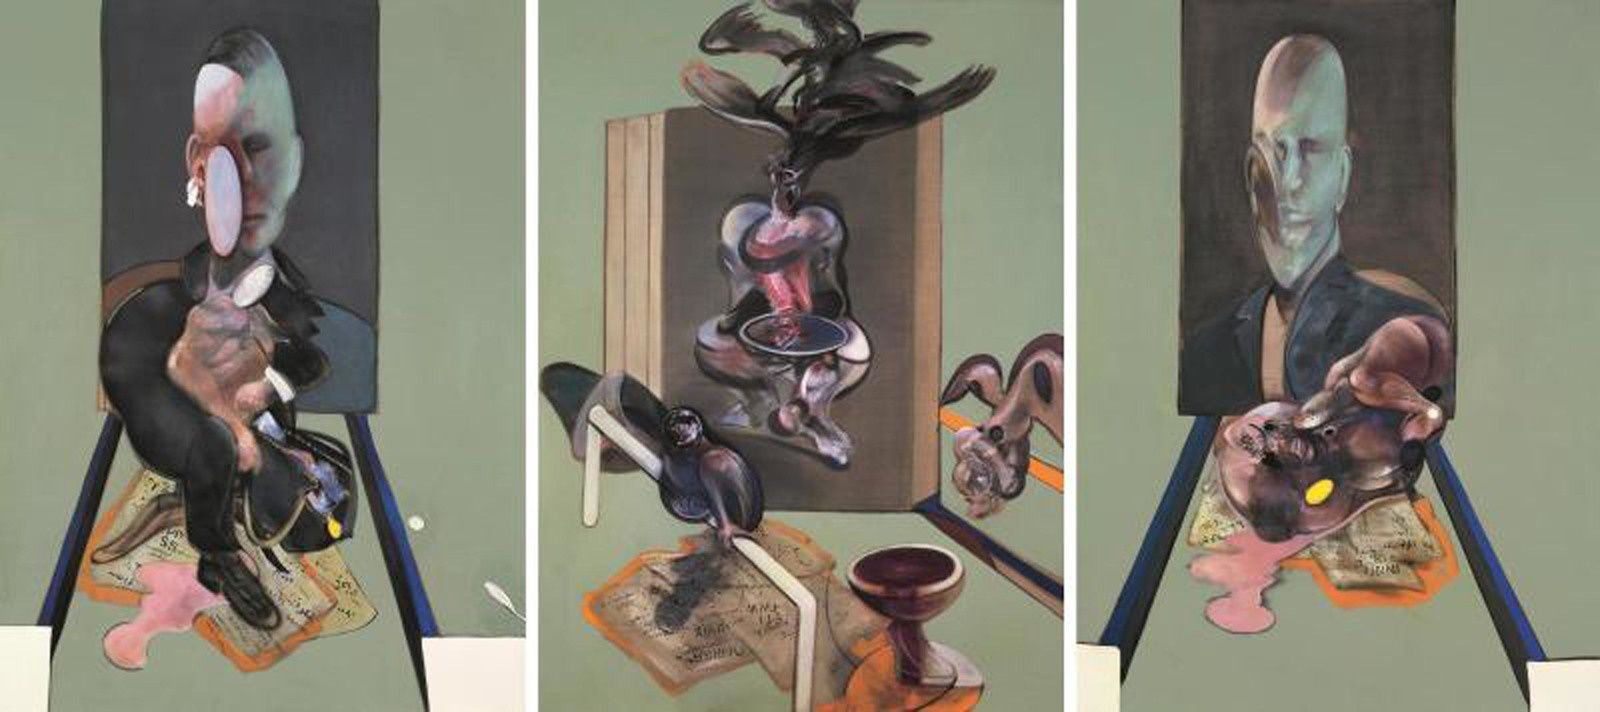 """Triptych"", 1976 de Francis BACON -  The Estate of Francis Bacon. All rights reserved. DACS/Artimage 2019. Photo: Prudence Cuming Associates Ltd"